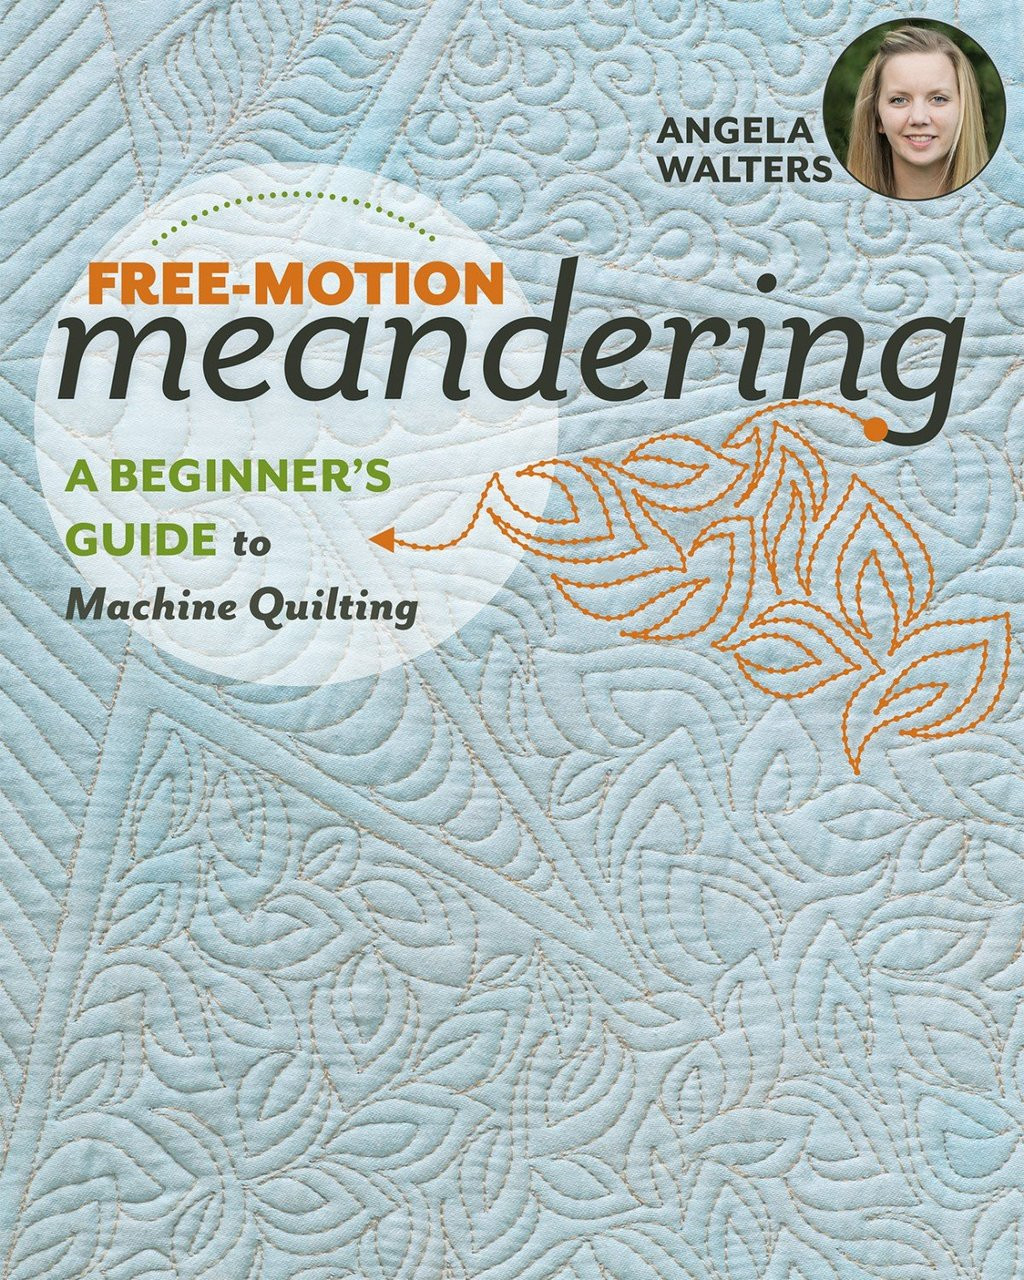 Free Motion Meandering With Angela Walters A Beginner S Guide To Machine Quilting